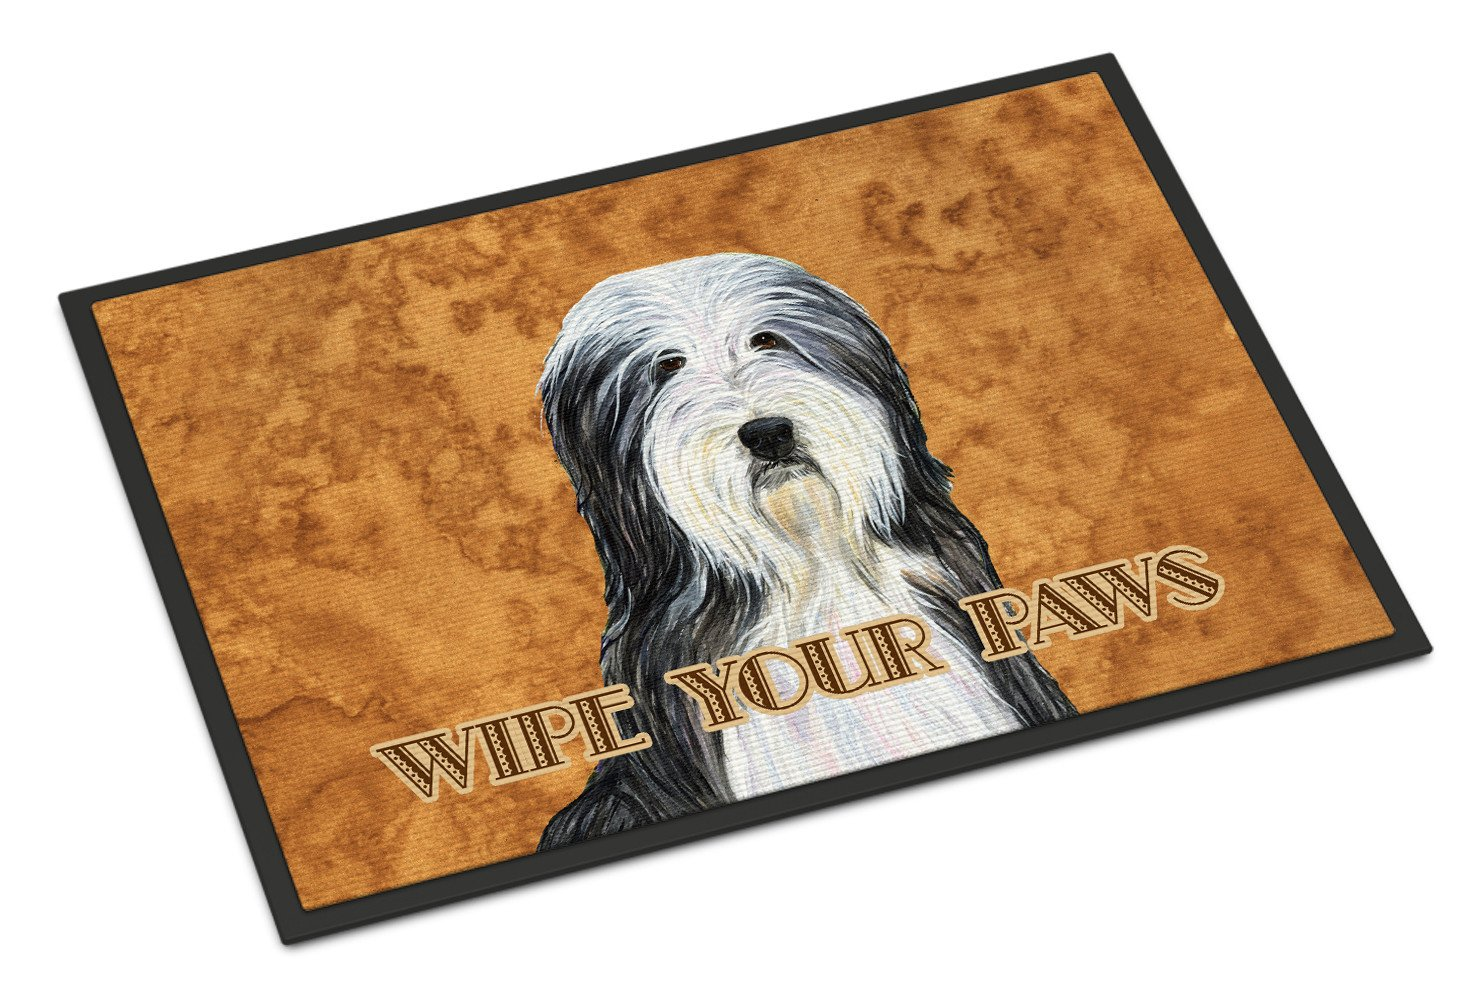 Bearded Collie Wipe your Paws Indoor or Outdoor Mat 18x27 SS4889MAT - the-store.com